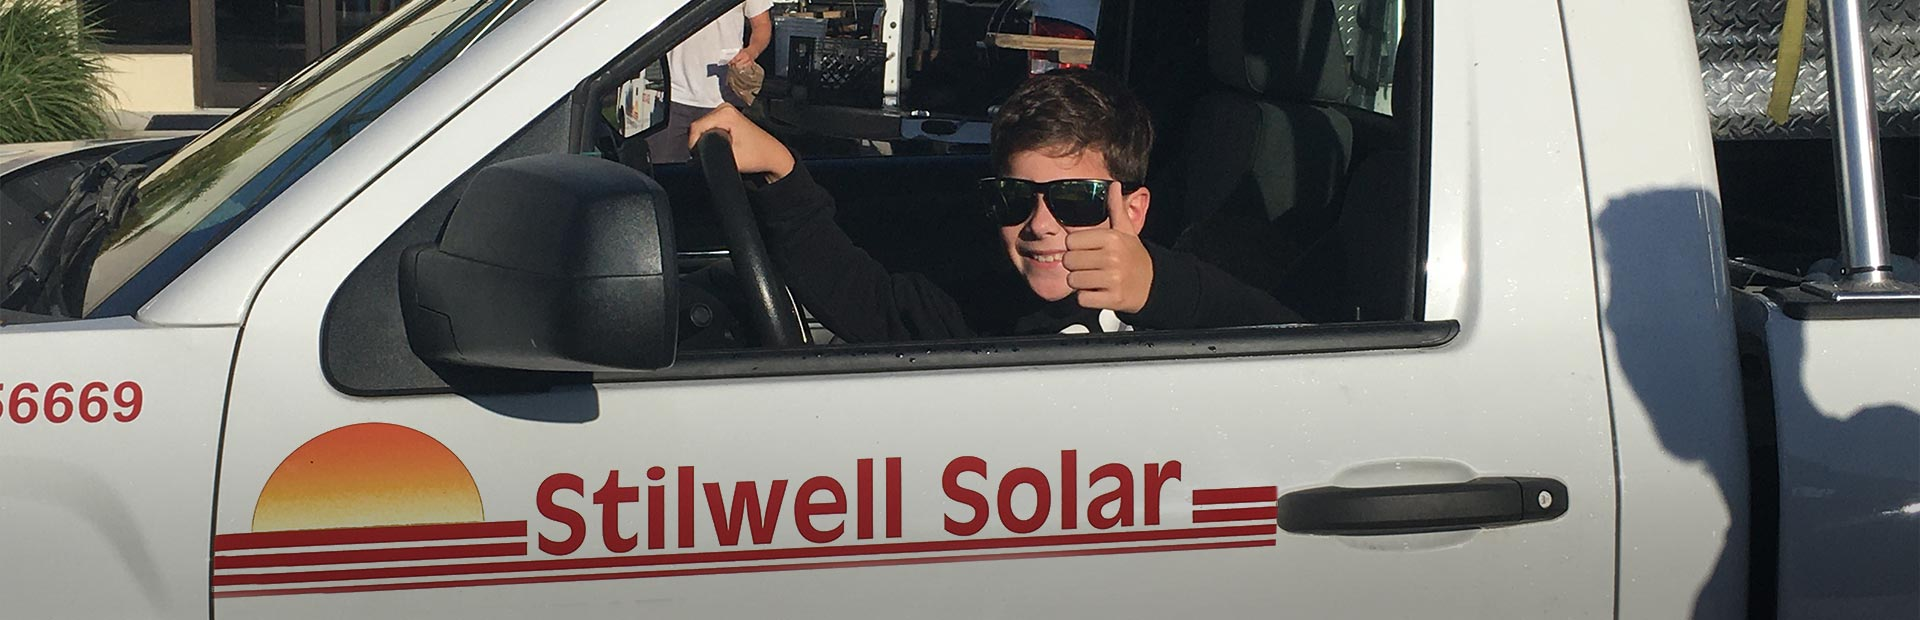 a next generation Stilwell Solar technician in truck giving a thumbs up